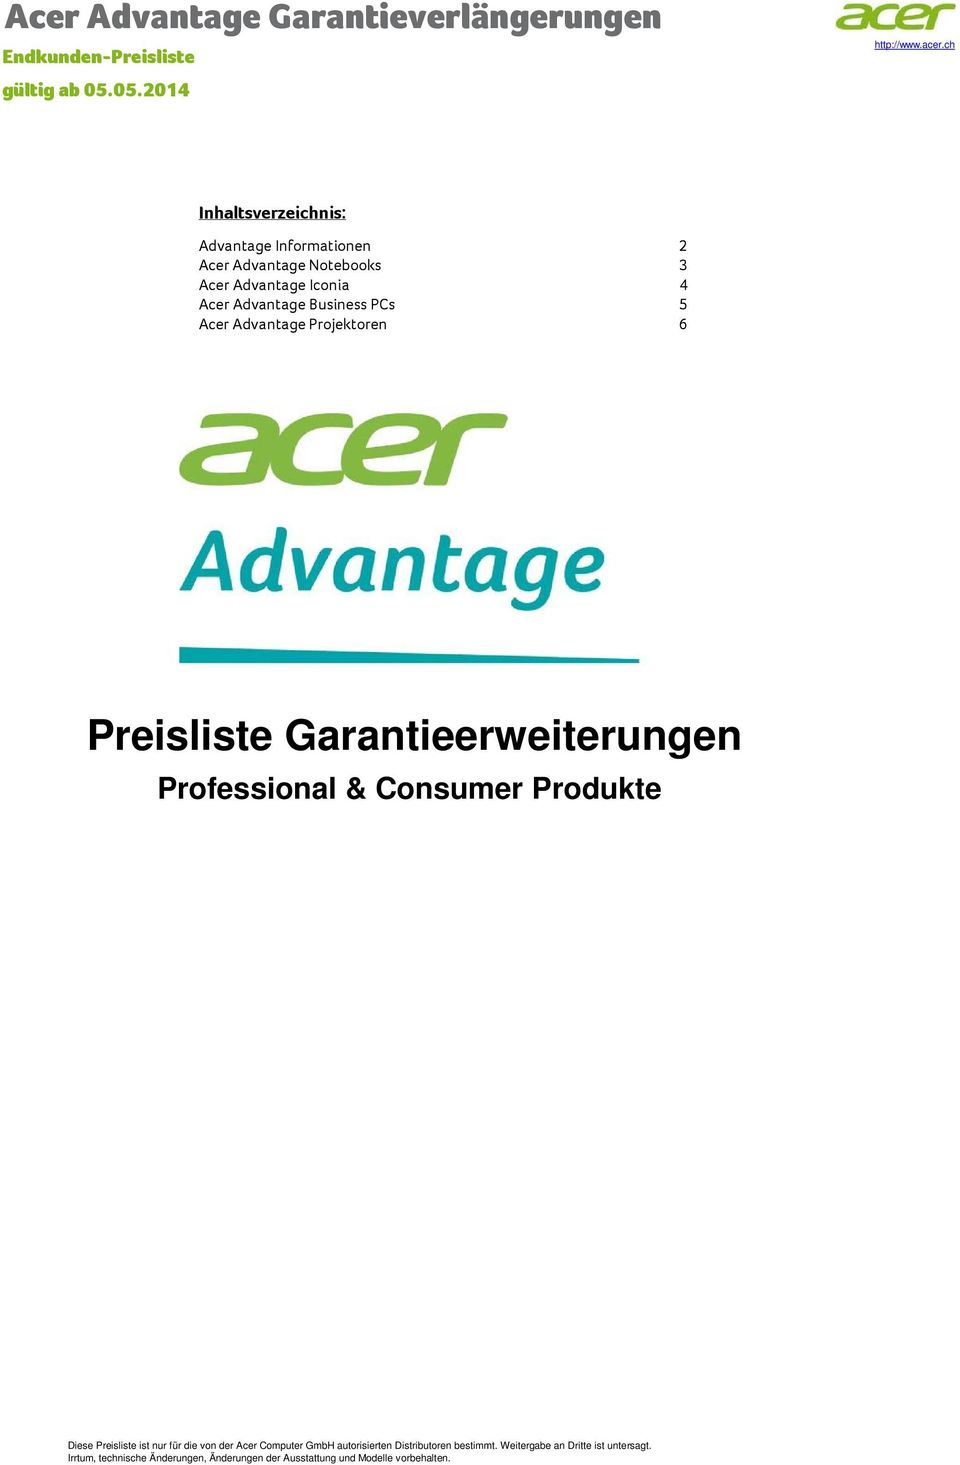 Advantage Notebooks 3 Acer Advantage Iconia 4 Acer Advantage